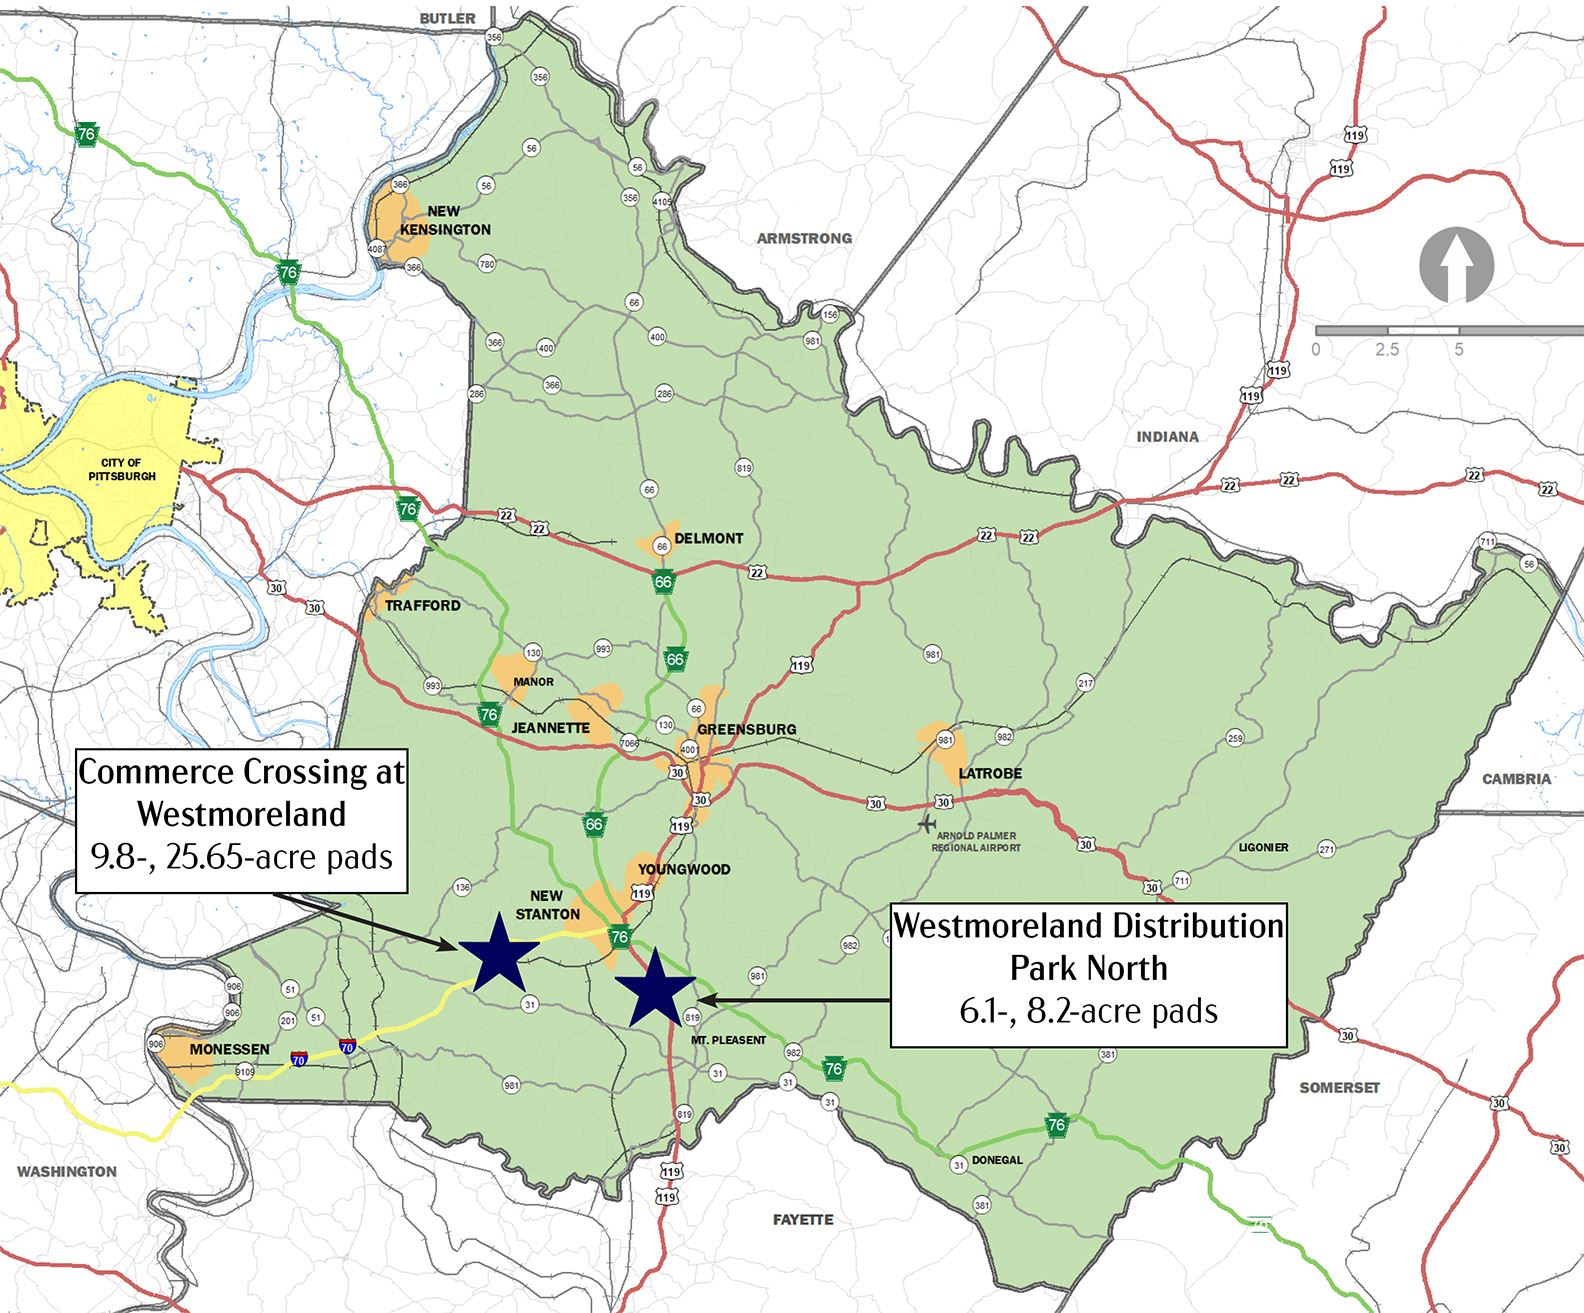 Pad Ready Sites | Westmoreland County, PA - Official Website on state of pa map, cowansville pa map, schuylkill river pa map, north strabane pa map, baldwin pa map, manns choice pa map, york pa map, centre hall pa map, huntingdon valley pa map, emporium pa map, bear rocks pa map, bucks co pa map, south hills pa map, karns city pa map, barkeyville pa map, red land pa map, hilliards pa map, greensburg pa map, rosslyn farms pa map, east pittsburgh pa map,